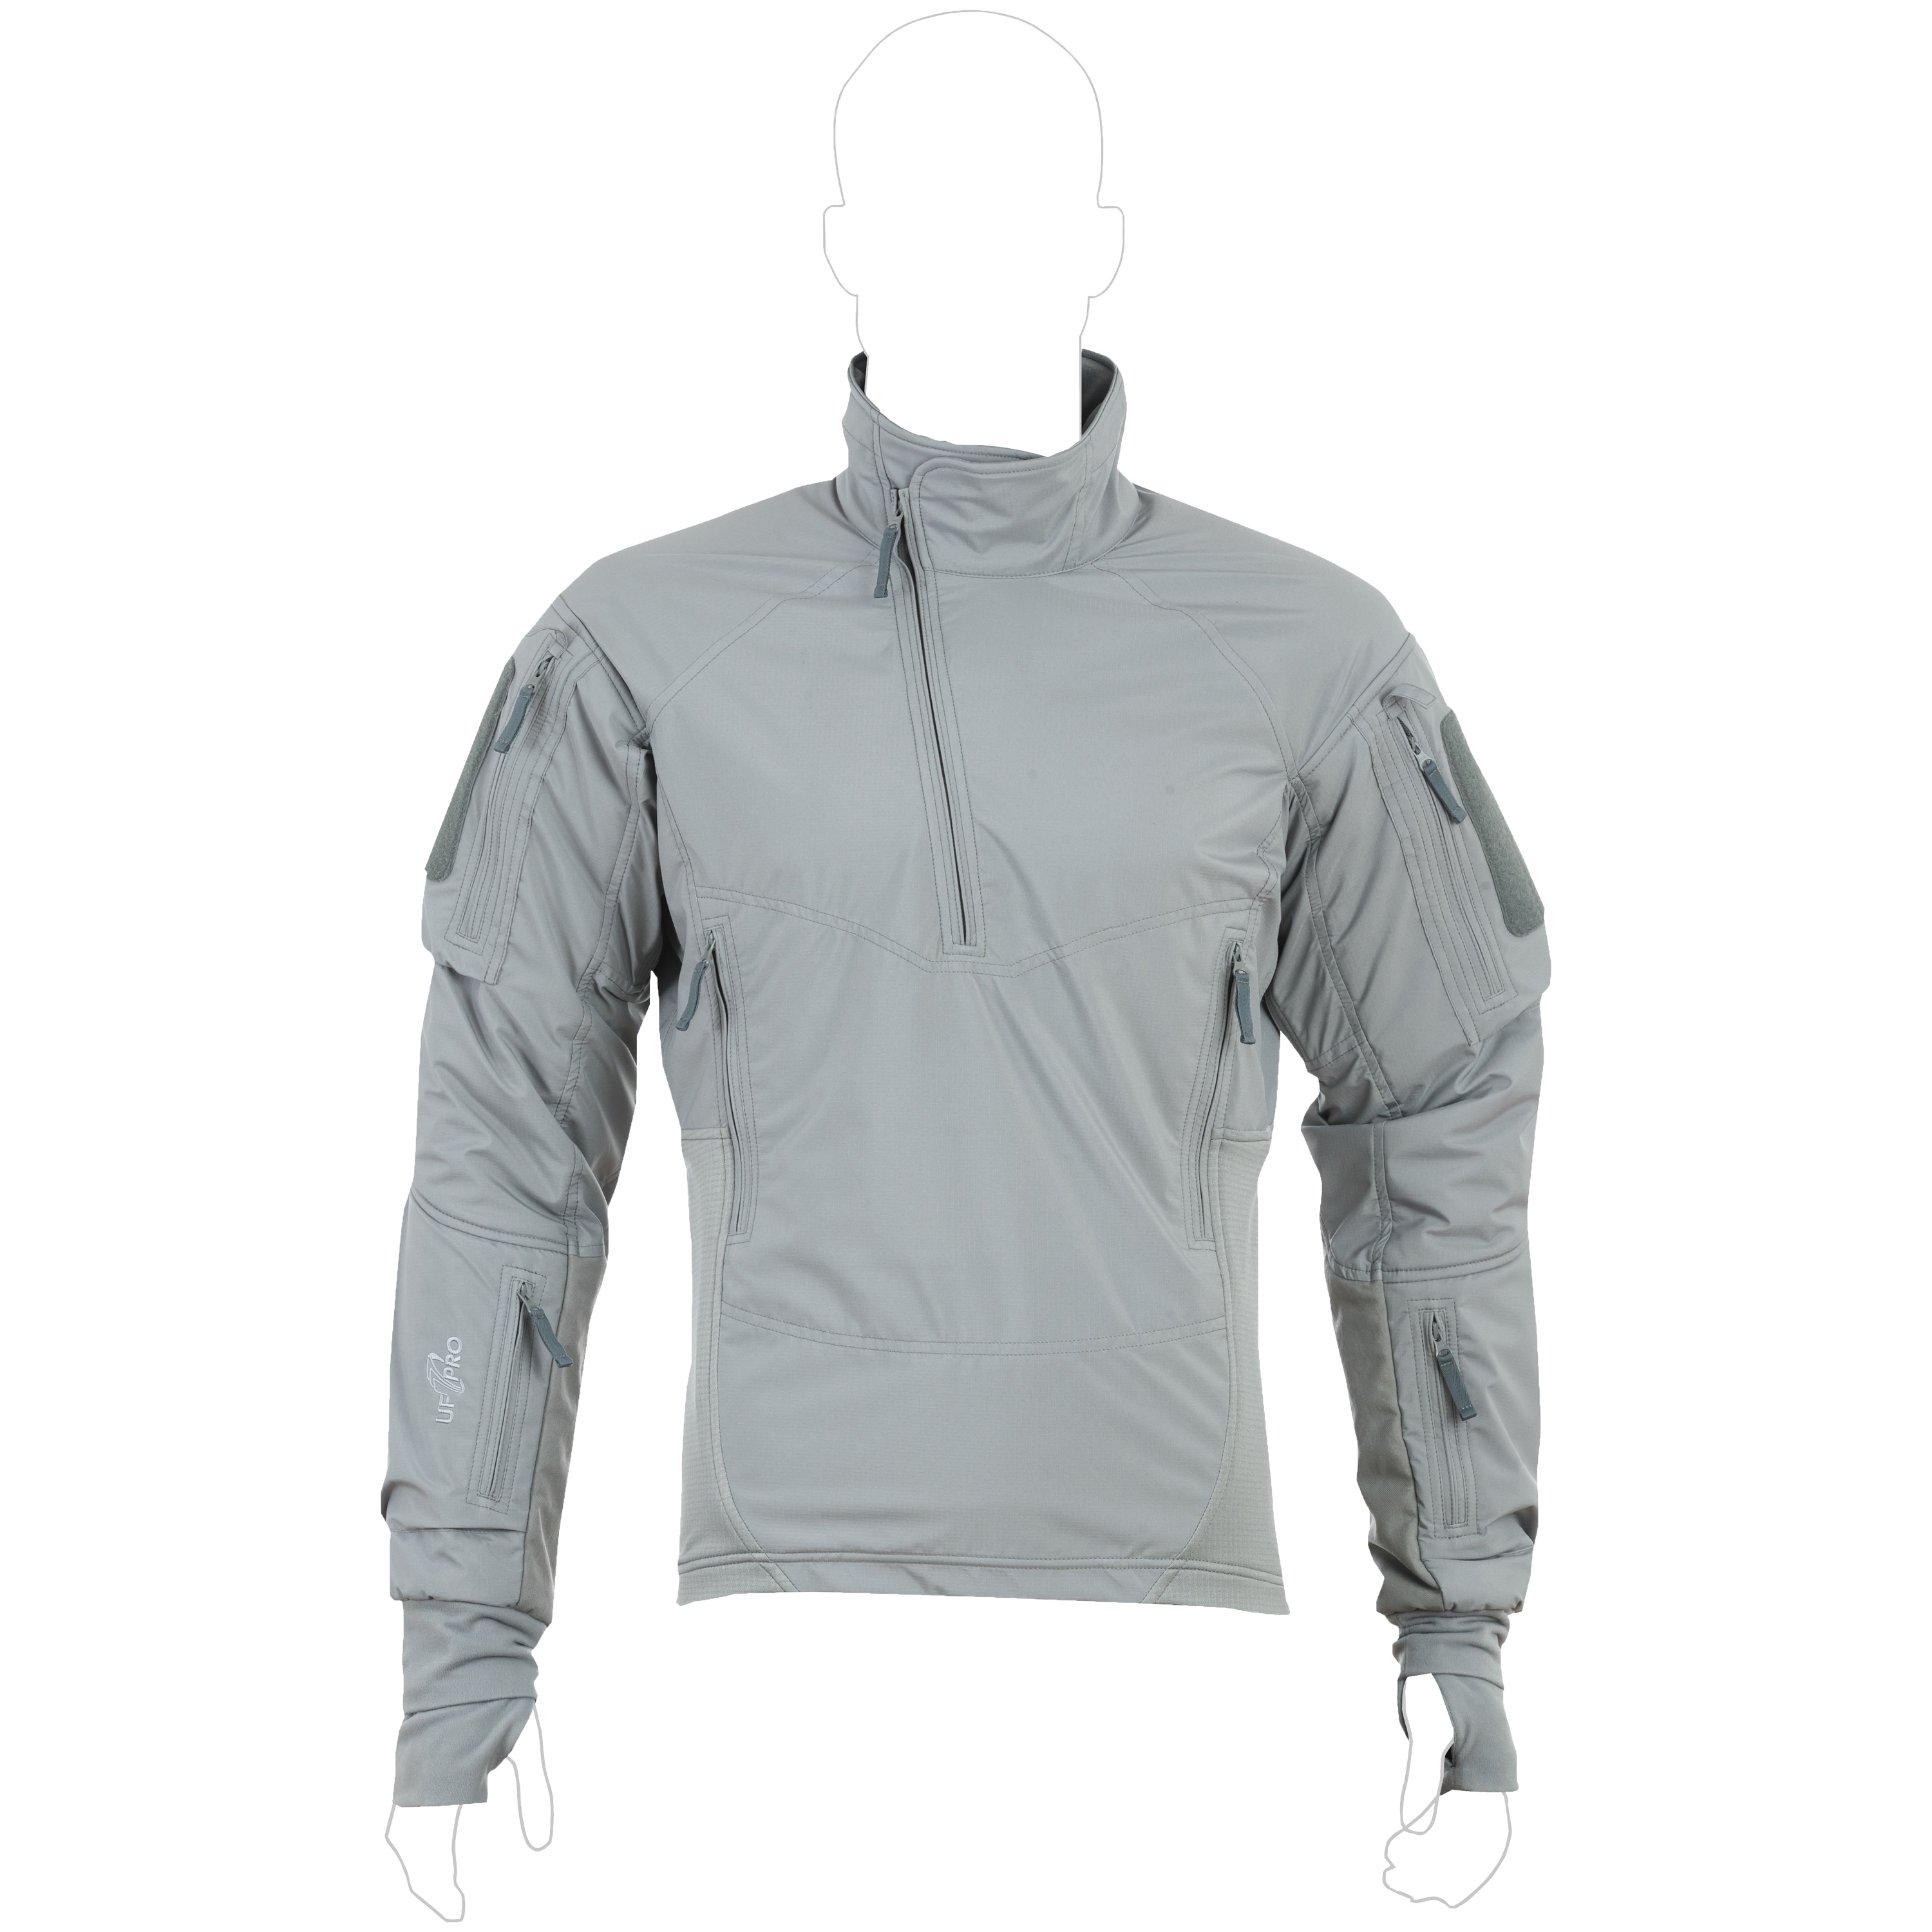 UF Pro Winter Combat Shirt AcE frost grey